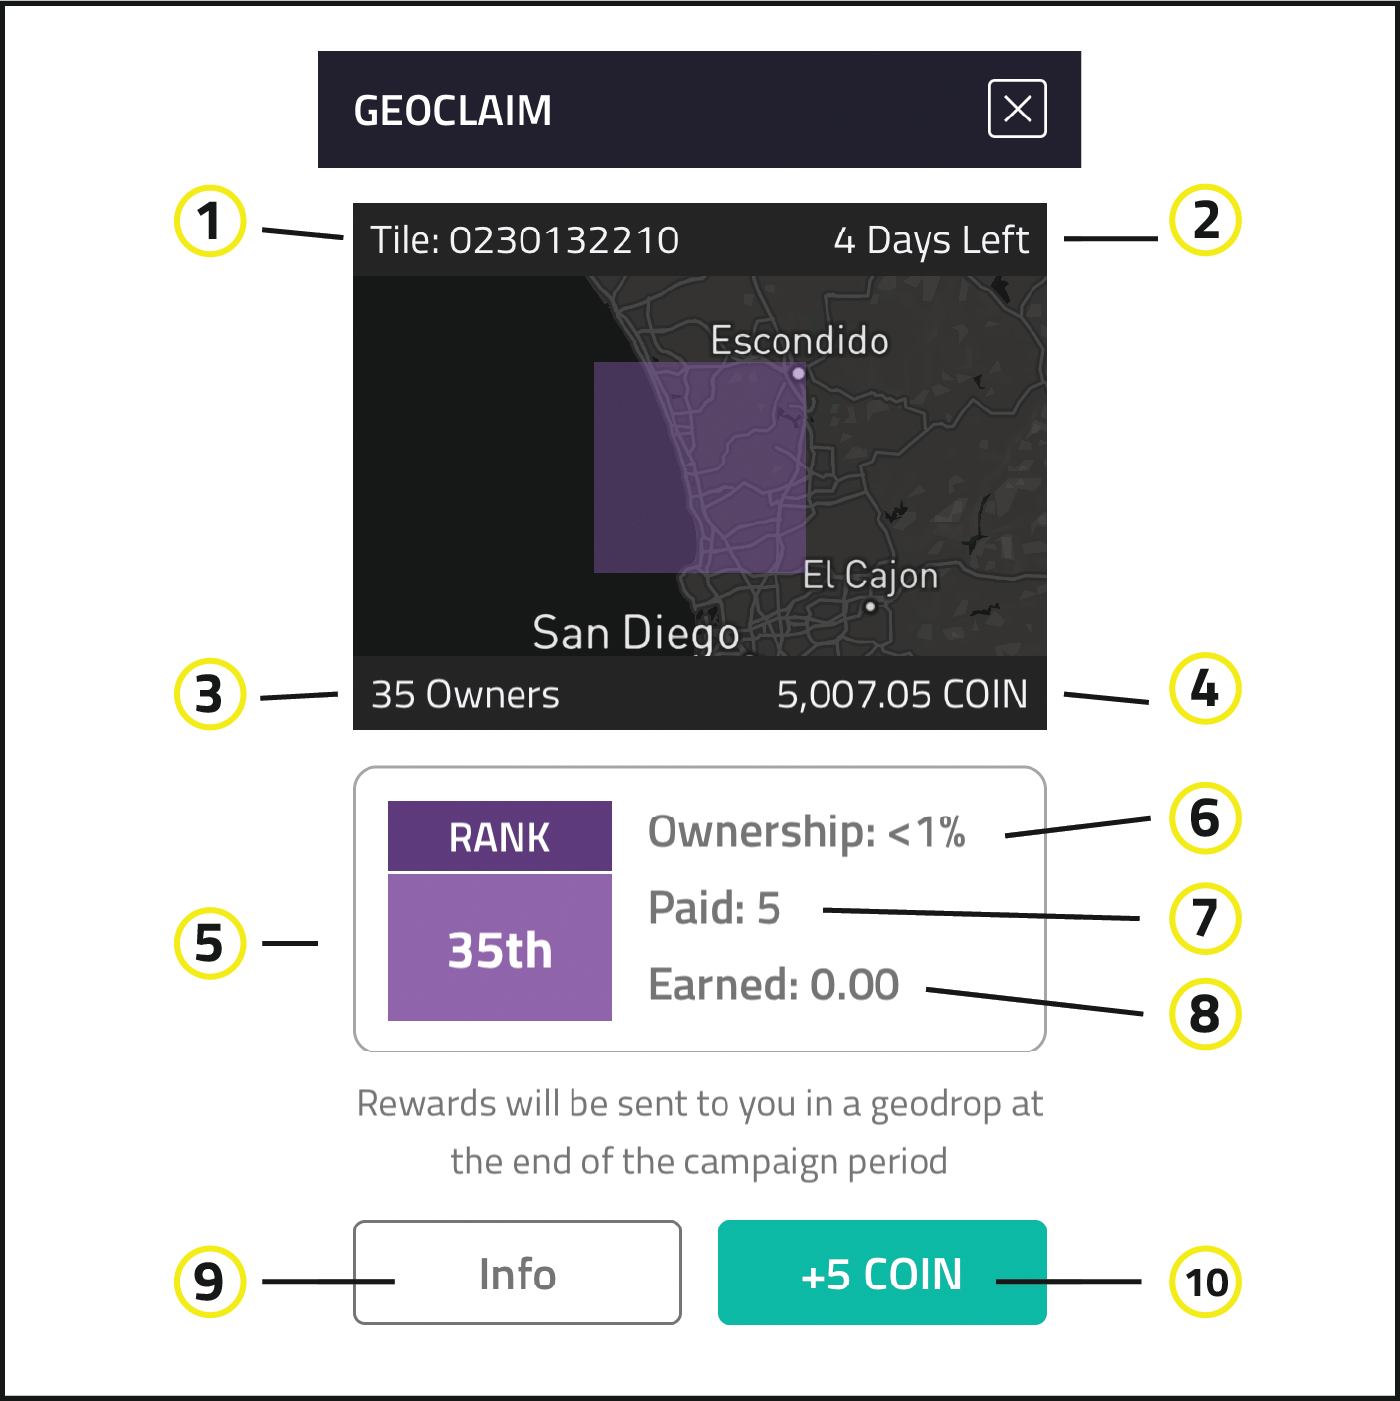 geoclaim-screen.png